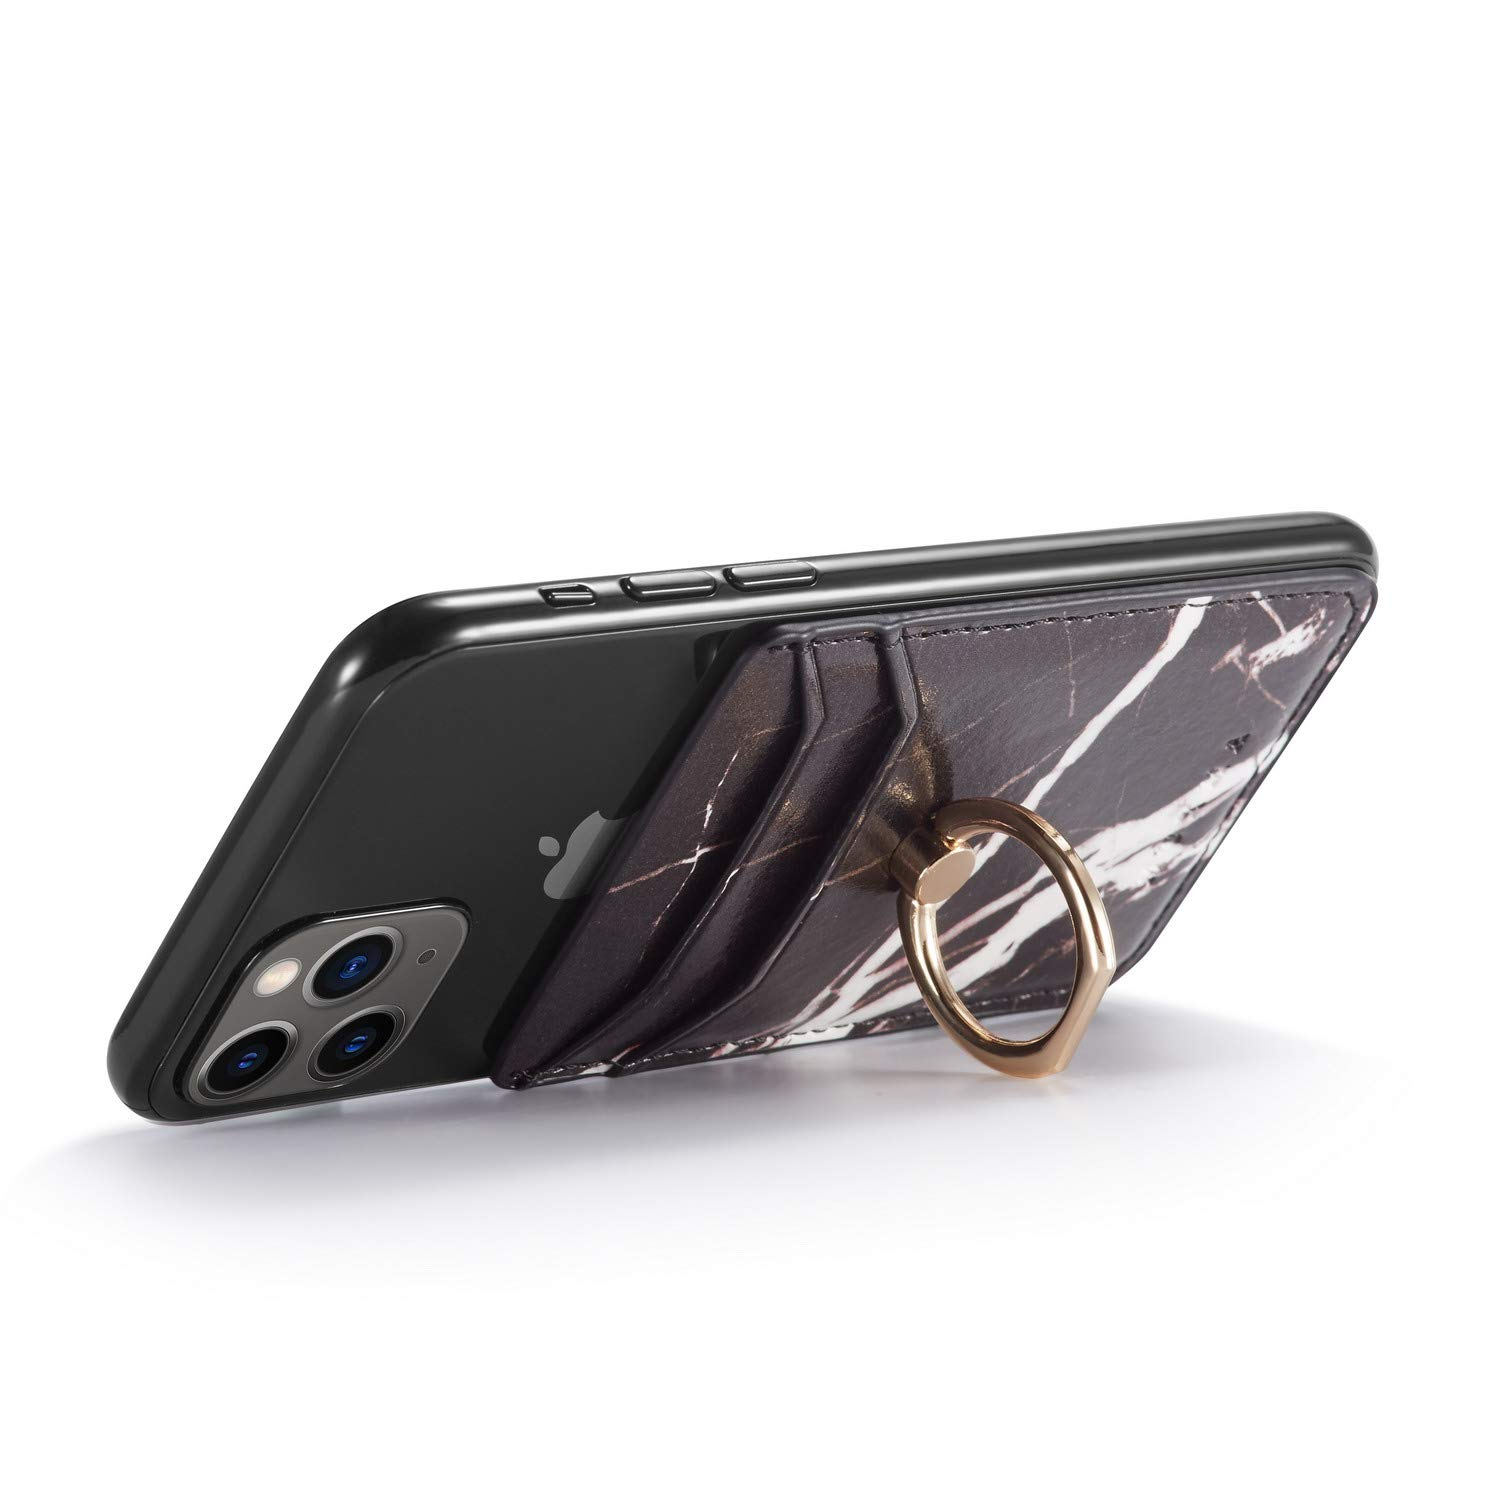 White Phone Card Holder with Ring Grip Stand Adhesive Stick-on Credit Card Wallet for iPhone and Android